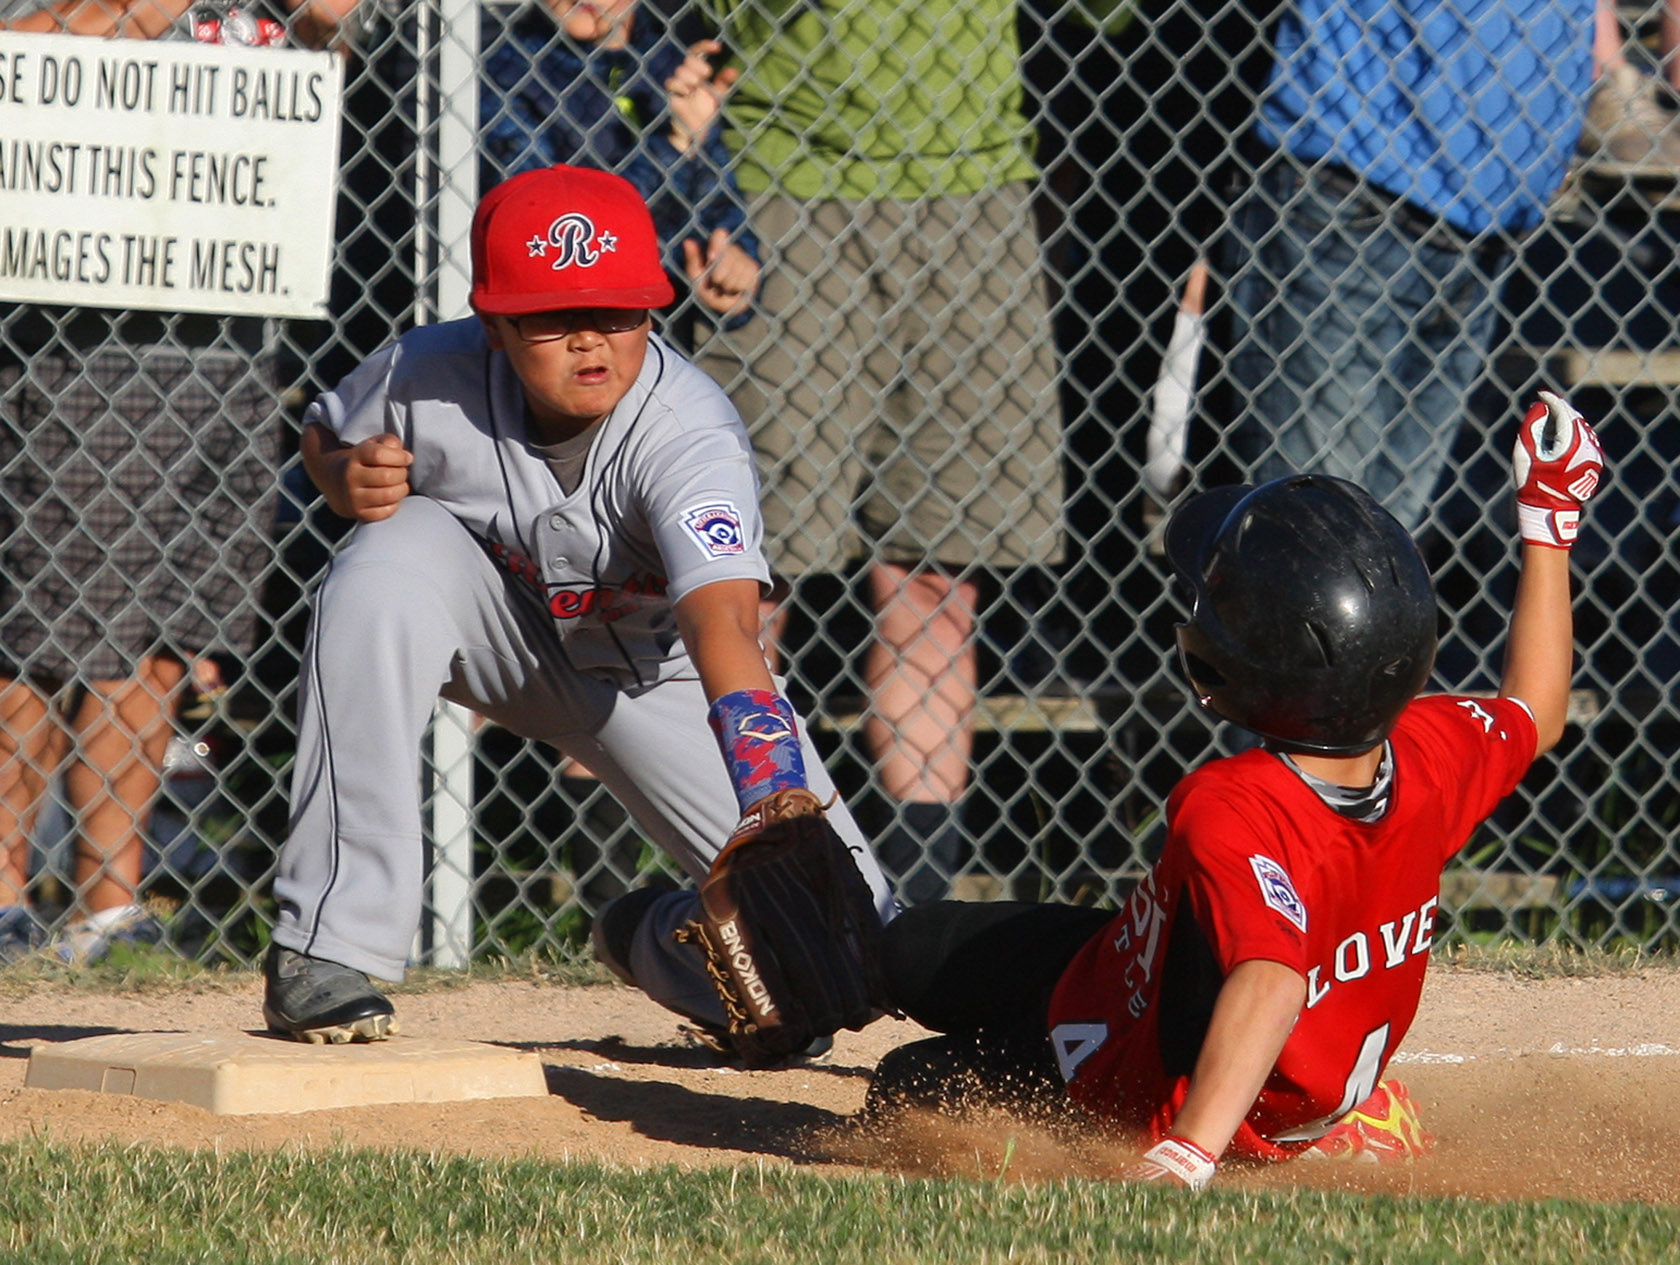 Wyatt Glover of West Seattle is tagged out by Renton's 3rd baseman Ethan Sugimoto attempting a triple.